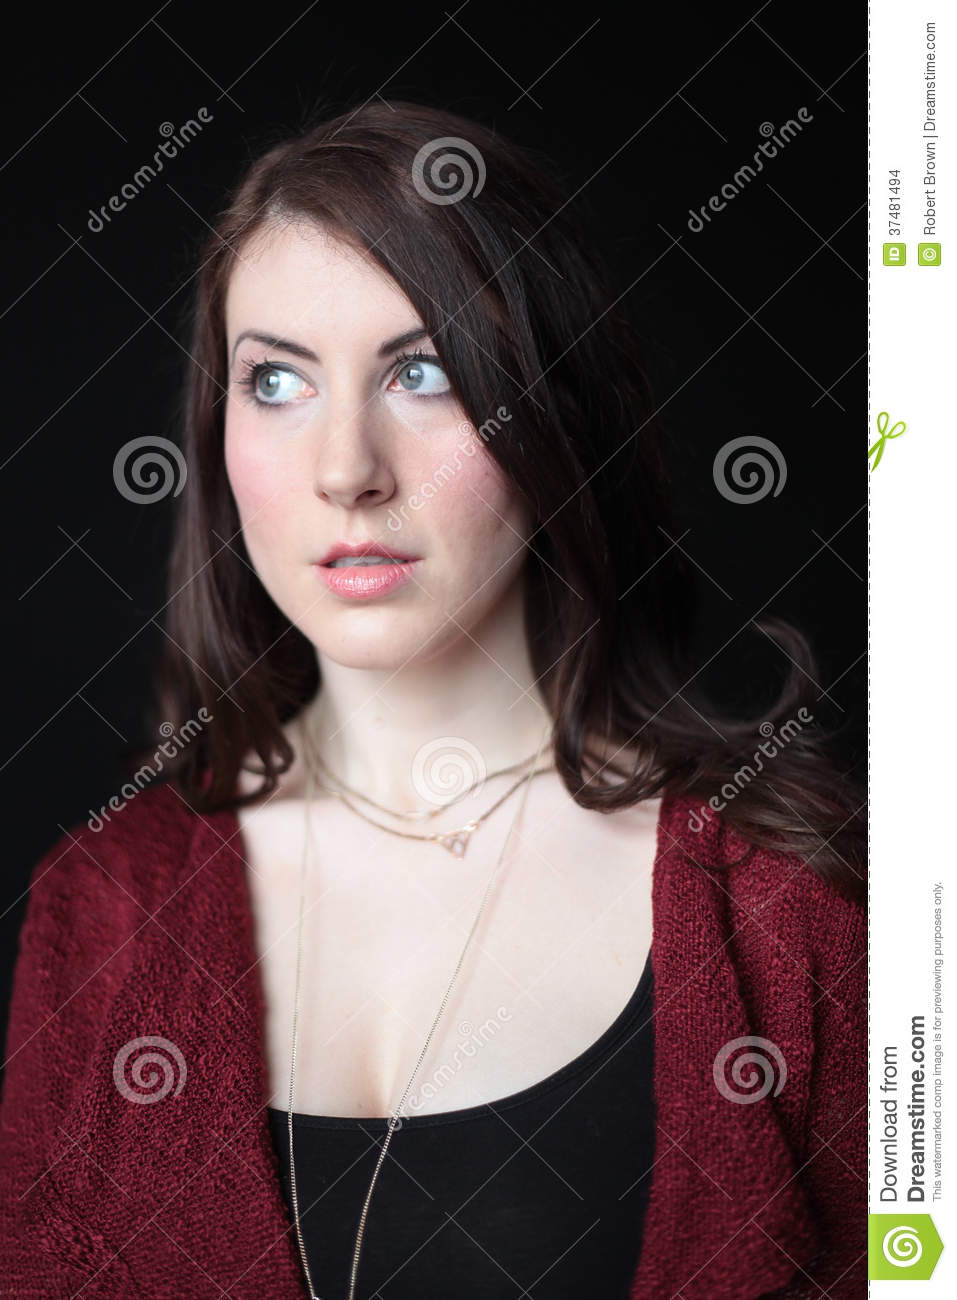 Women with Brown Hair and Blue Eyes